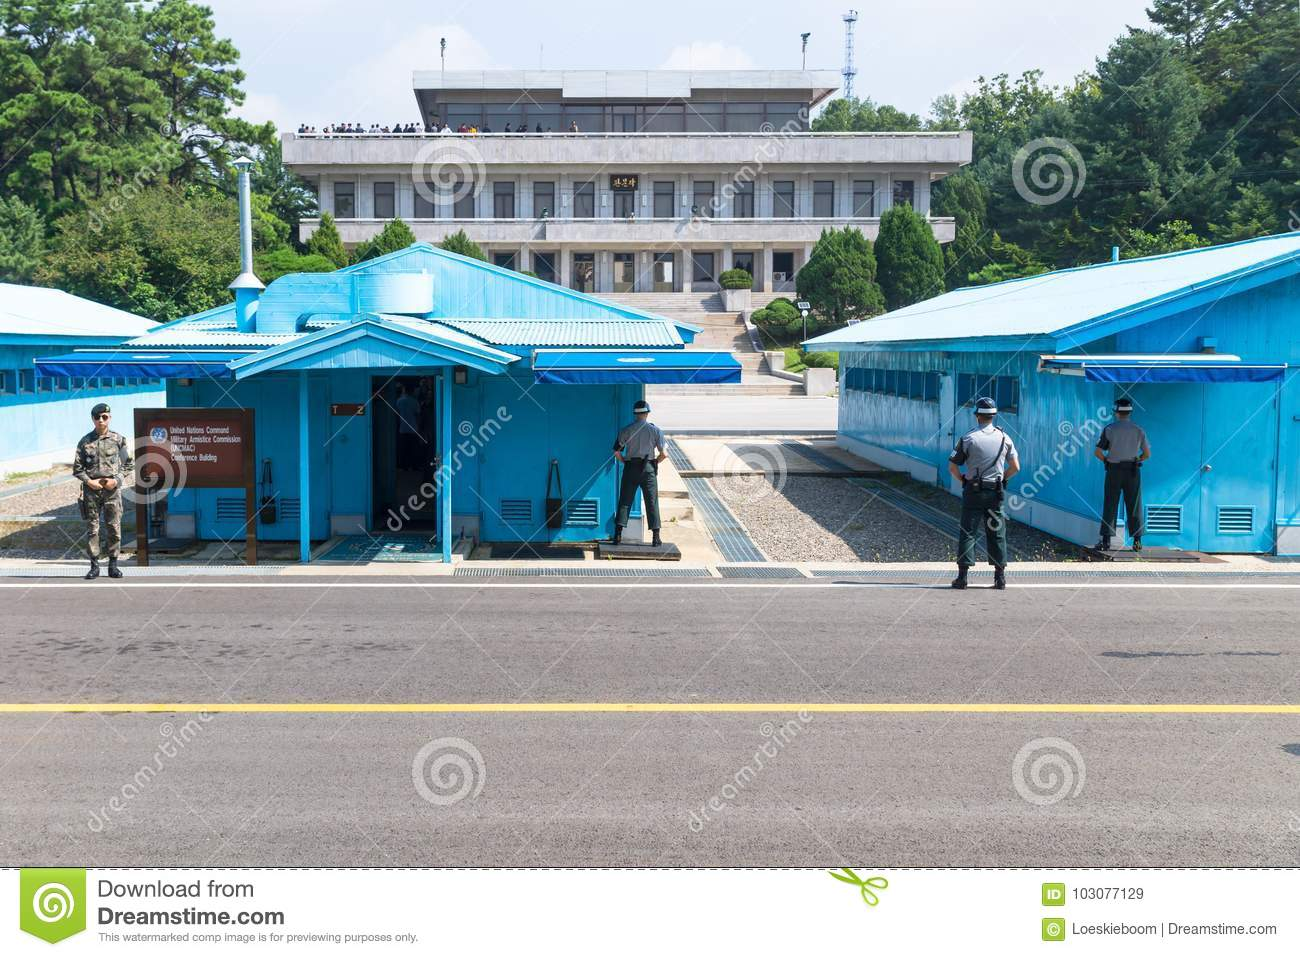 JSA within DMZ, Korea - September 8 2017: UN soldiers and soldiers on a sunny day in front of blue buildings at North South Korean